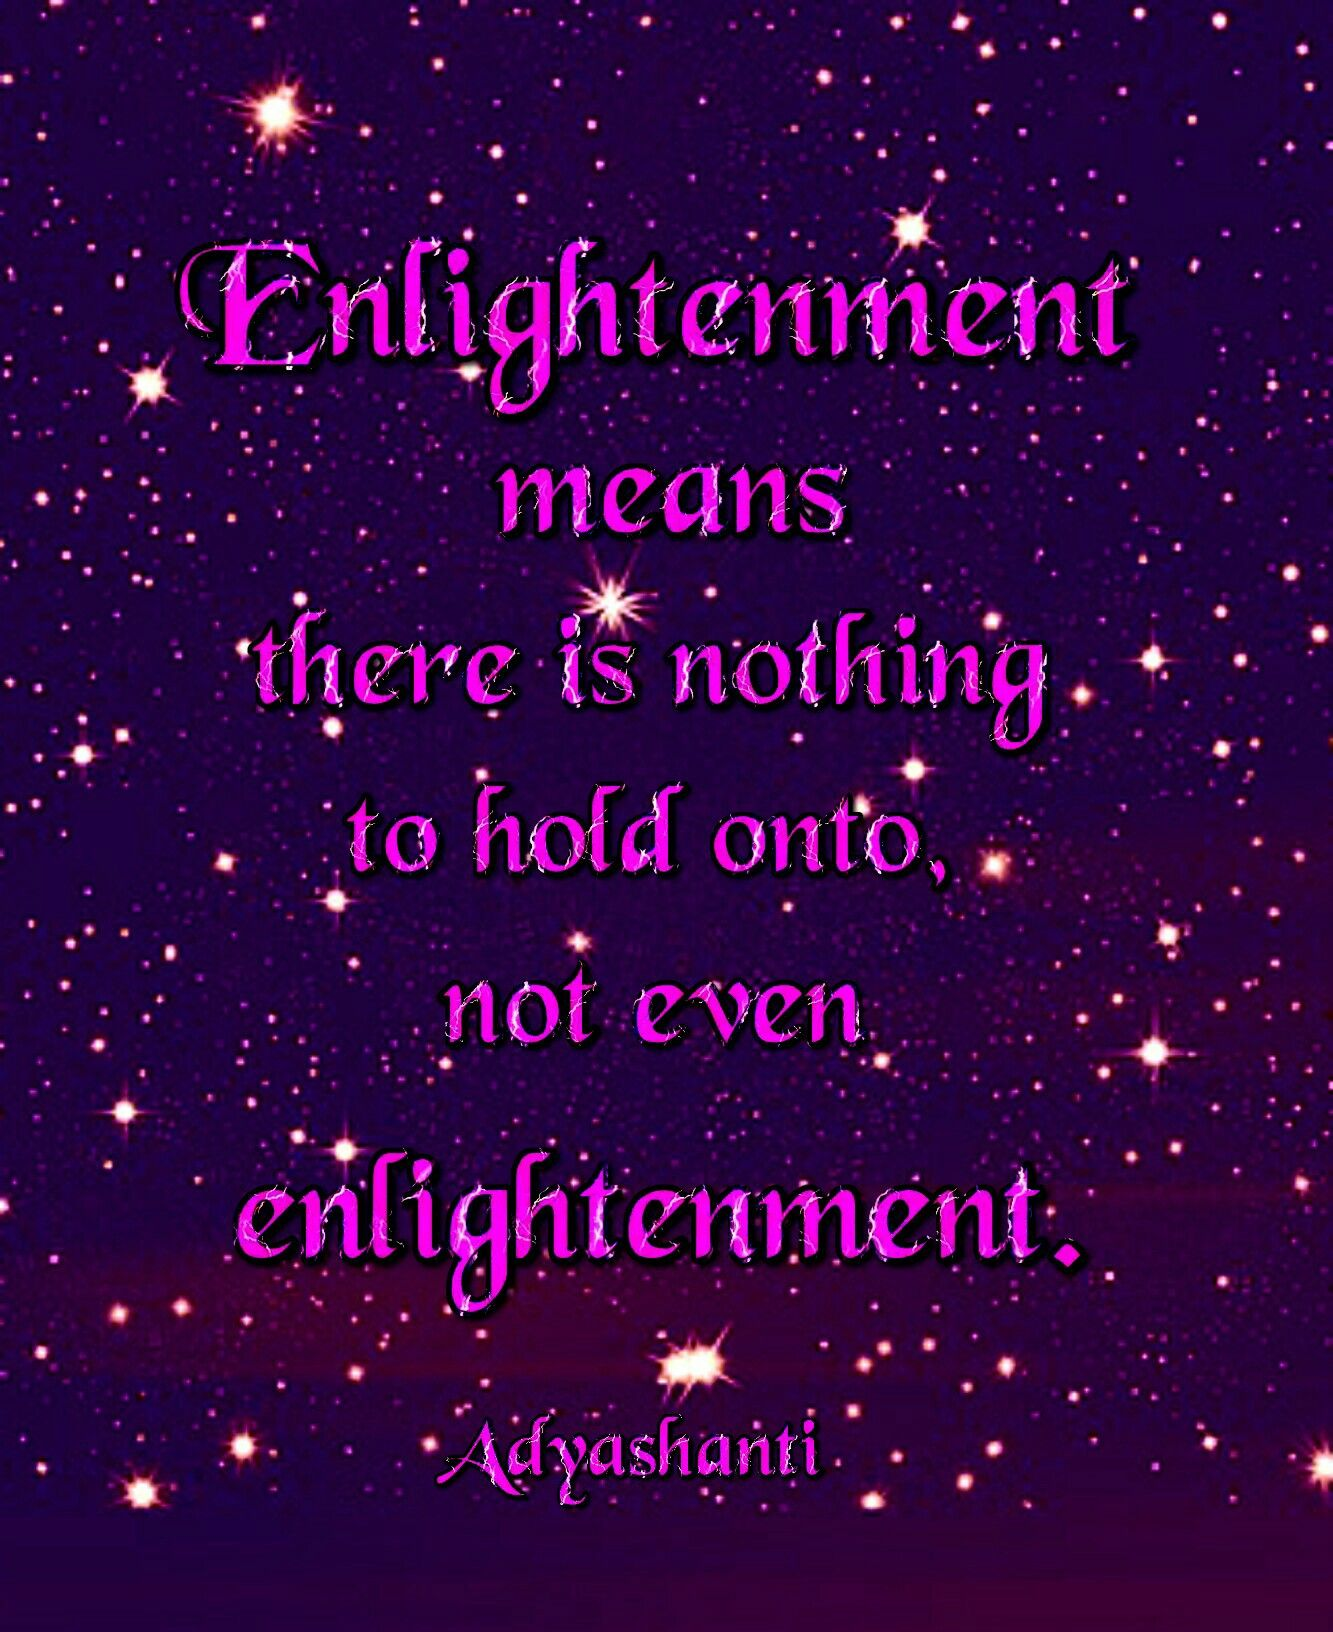 Adyashanti Quotes Enlightenment Means There Is Nothing To Hold On Tonot Even